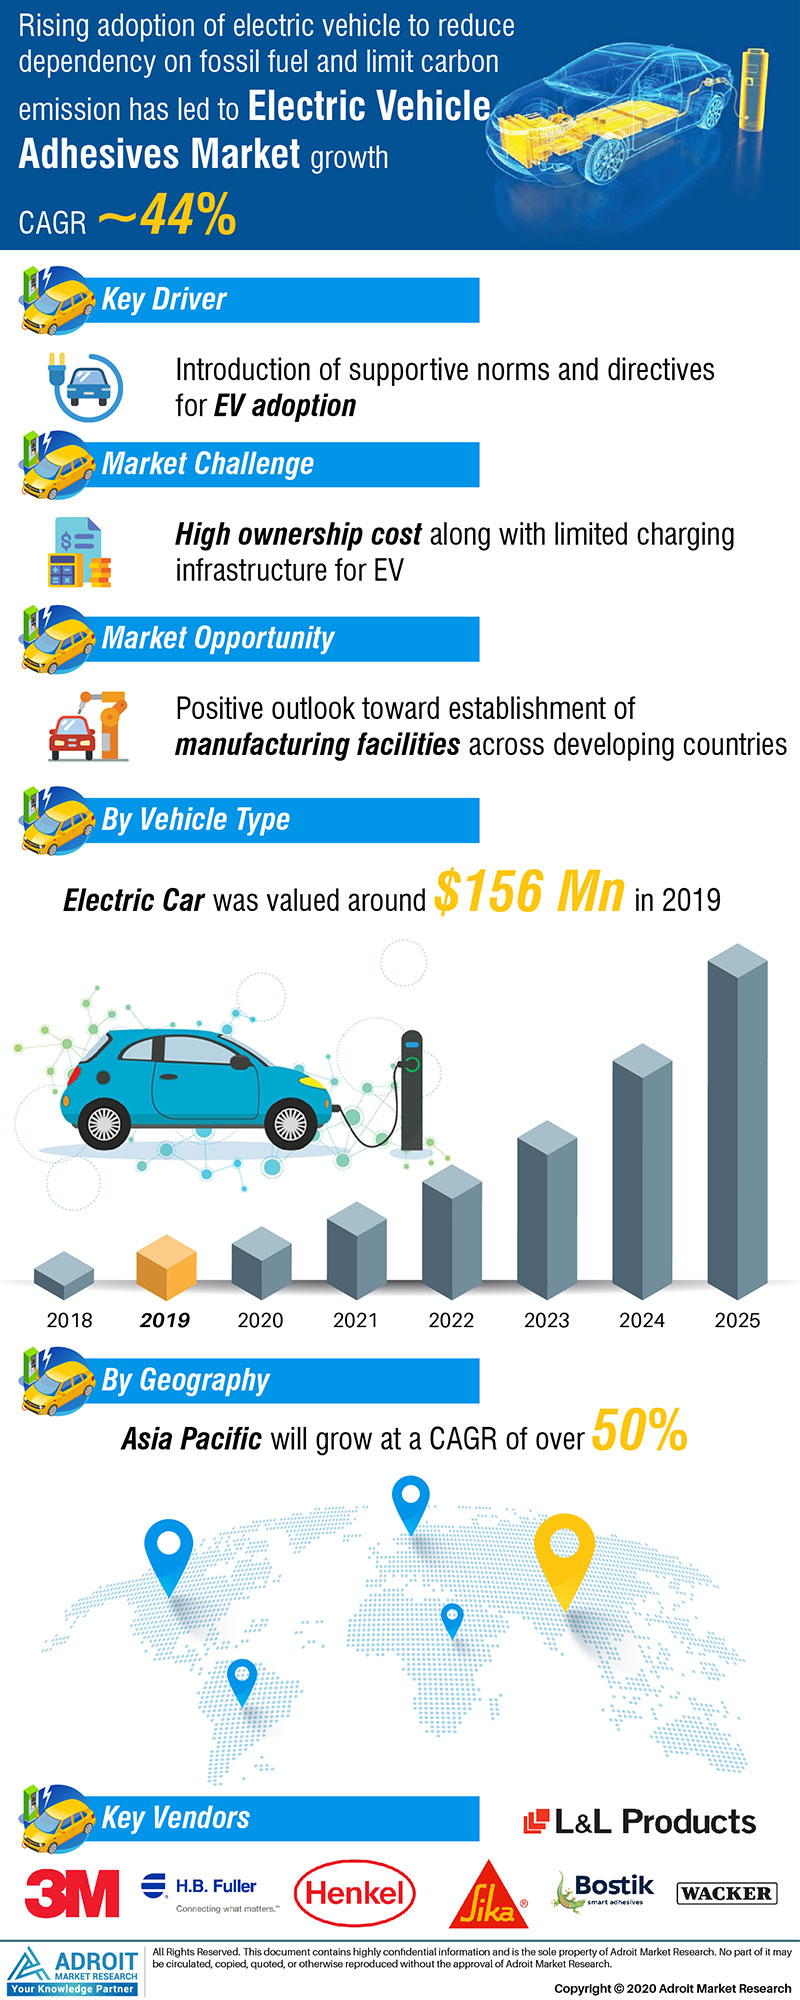 Electric Vehicle Adhesives Market by Material, Application, and Region, Global Forecasts 2018 to 2025